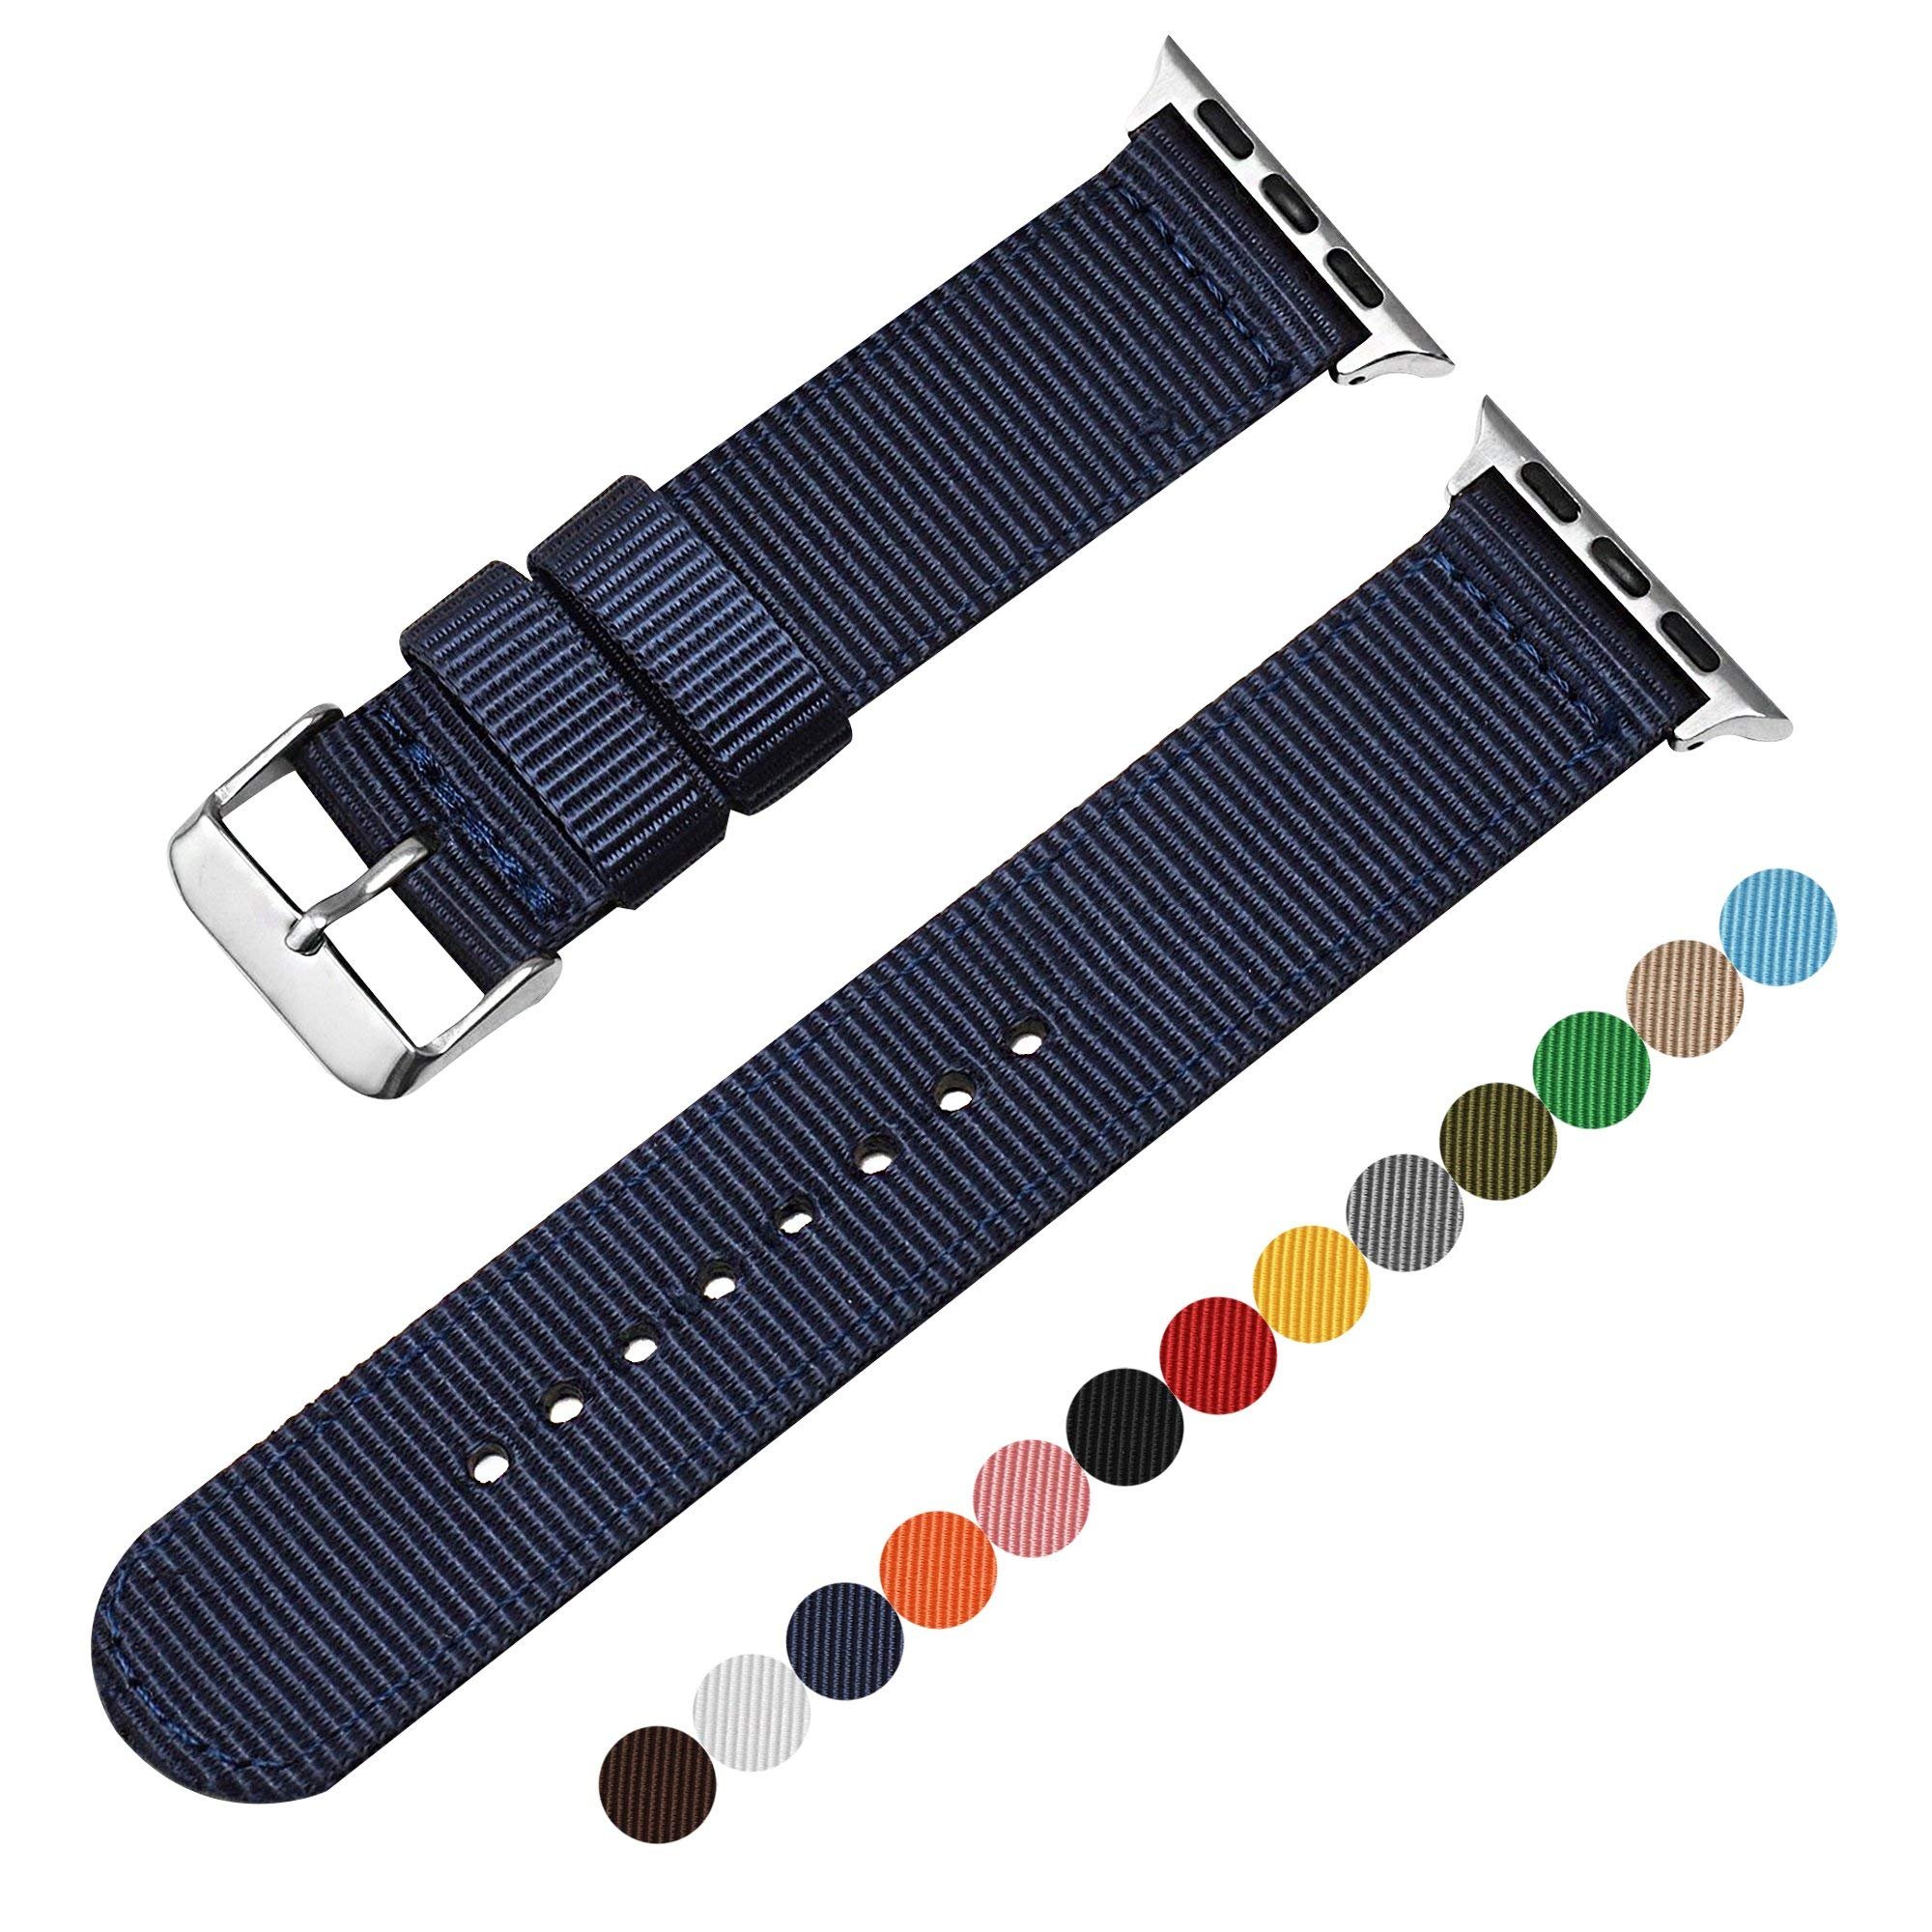 Autulet for Apple Watch Band Nylon Replacement Women's Or Men's 38mm for Apple Iwatch 1/2/3 (Royal Blue)